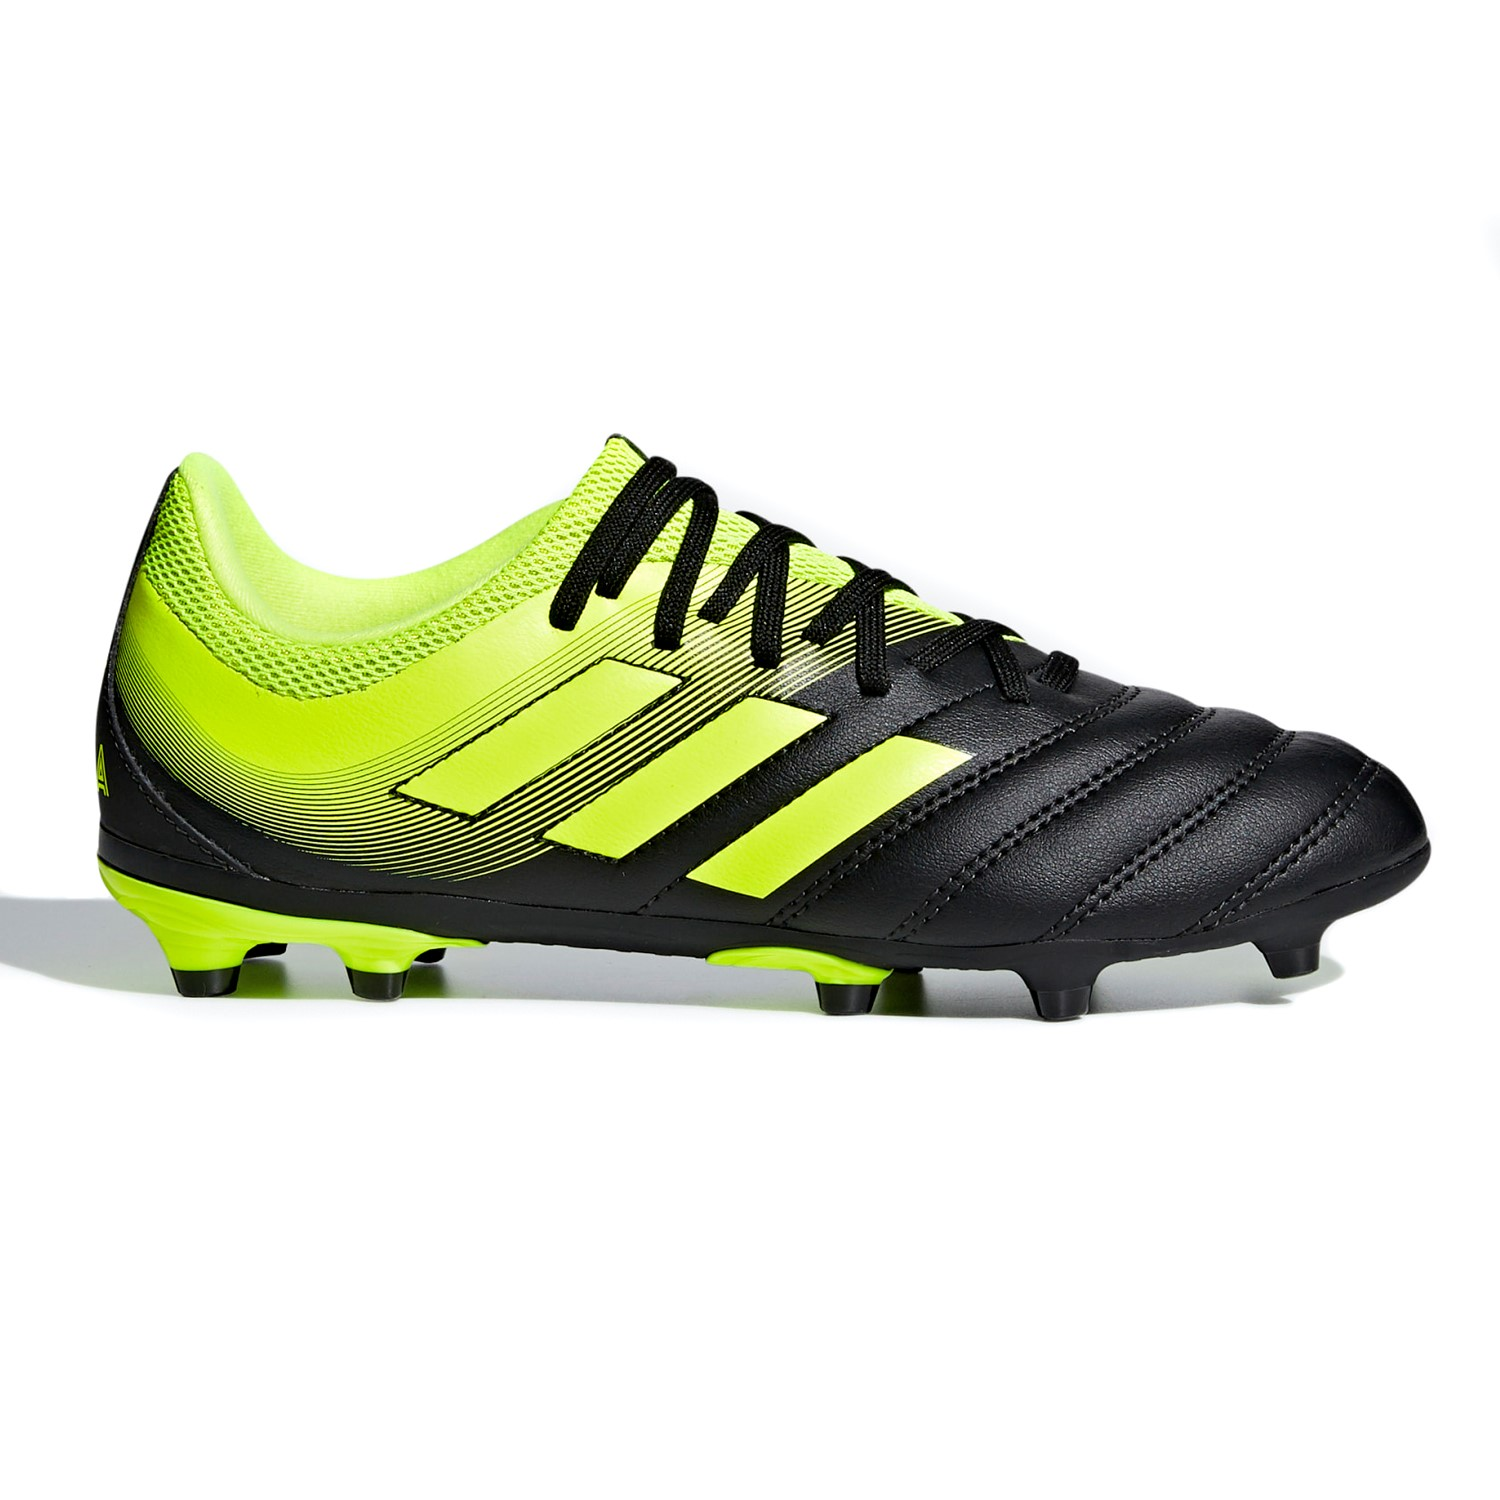 7de878dc8a Adidas Copa 19.3 FG - Kids Boys Football Boots - Core Black Yellow ...